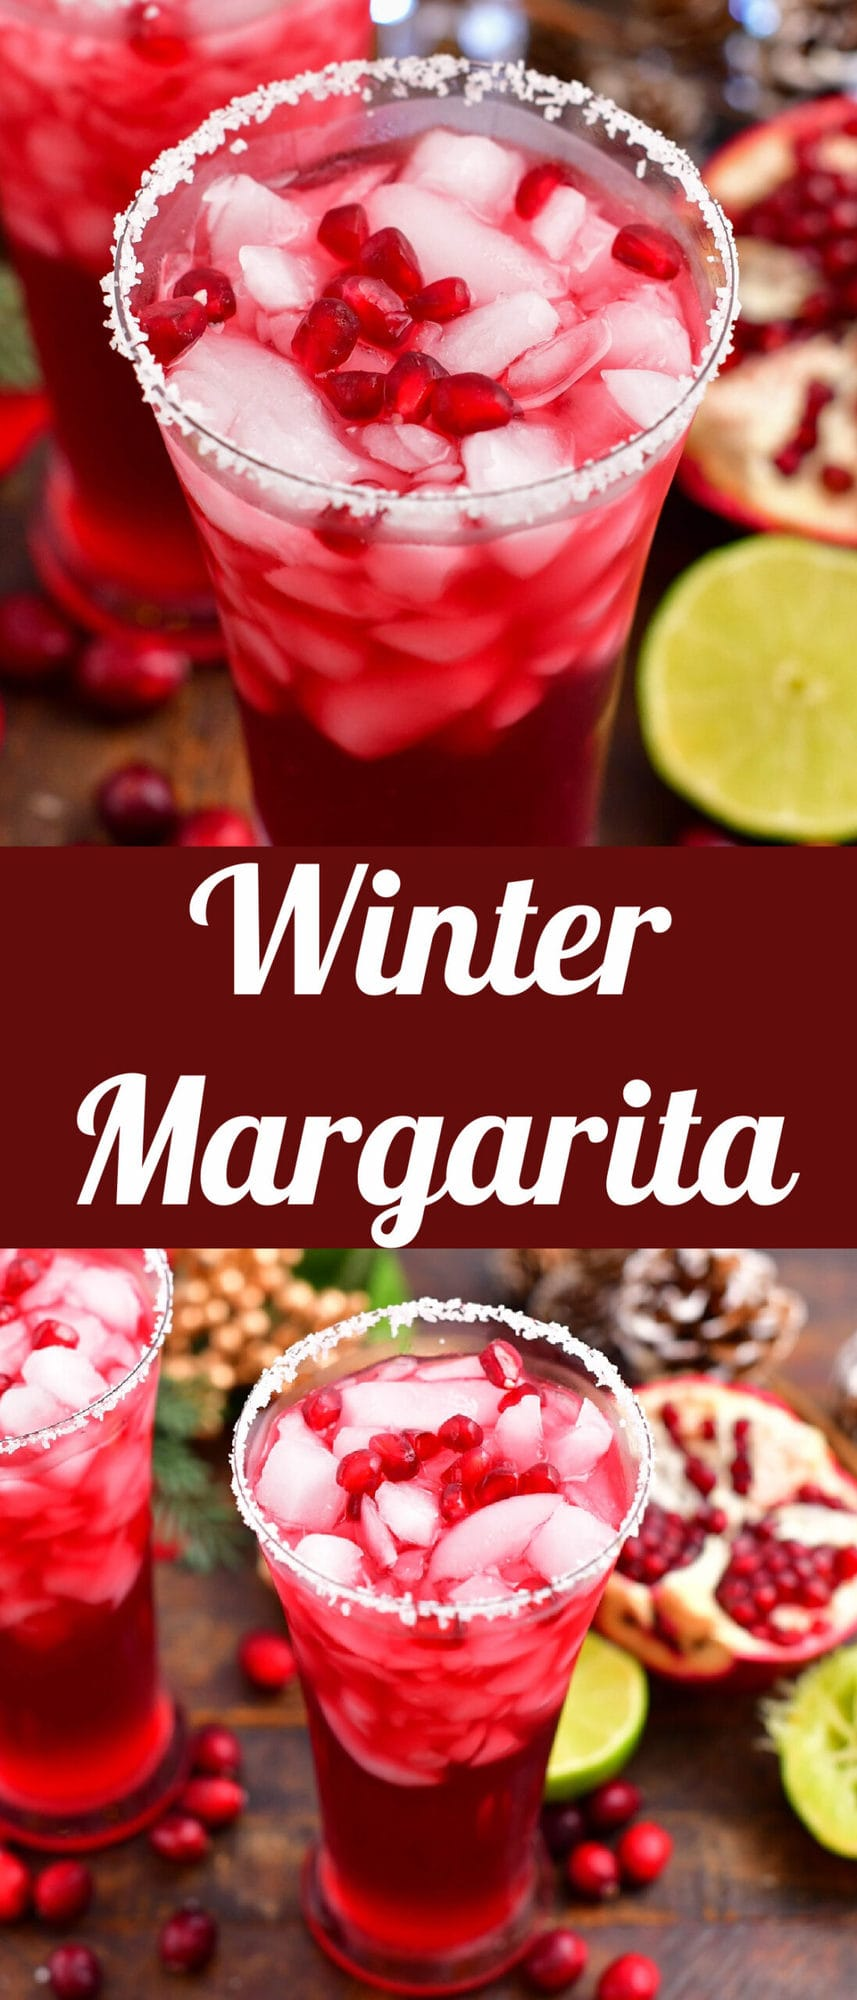 collage of two images of winter margarita cocktail in a glass up close and further away with title in the middle